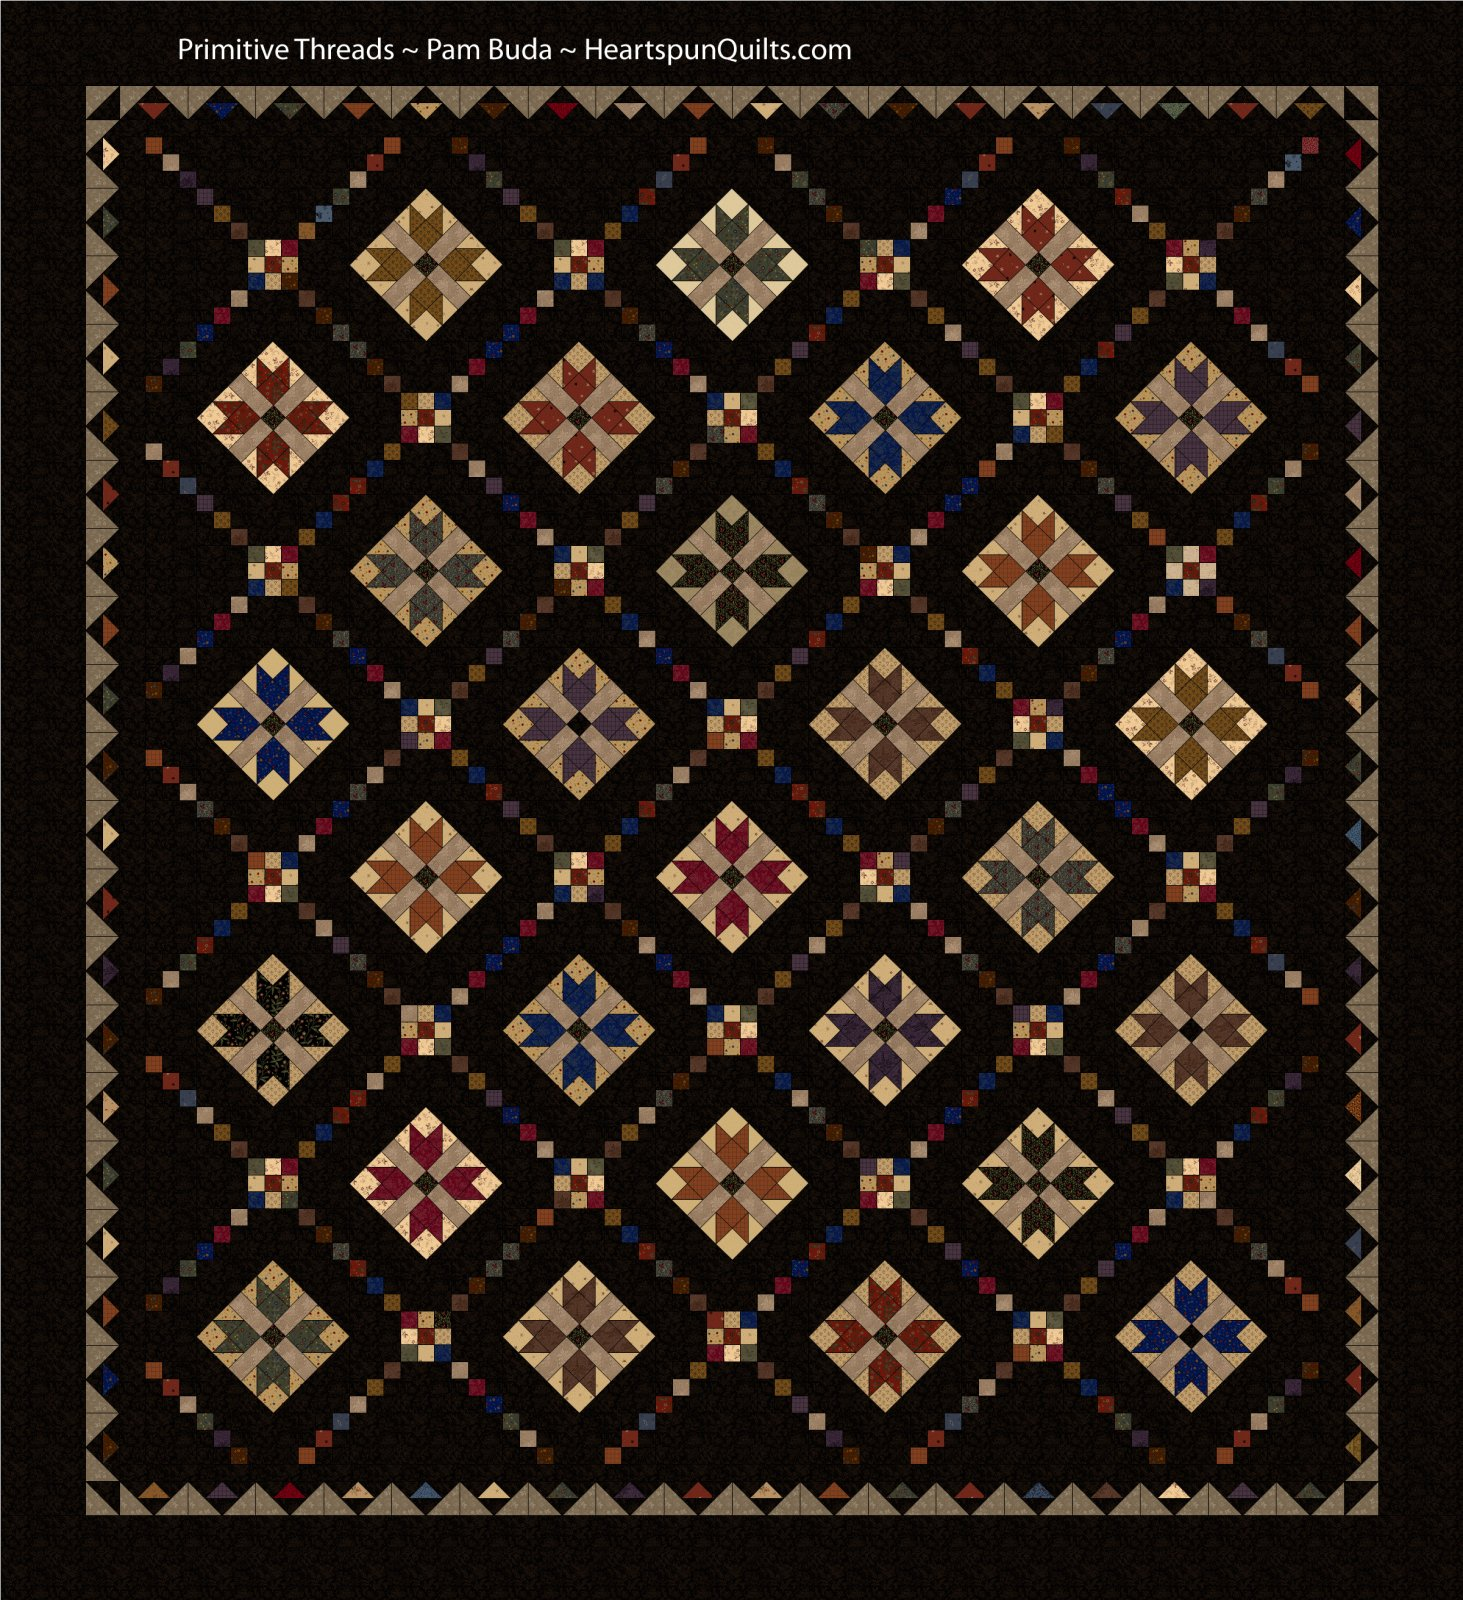 Primitive Threads Quilt Kit